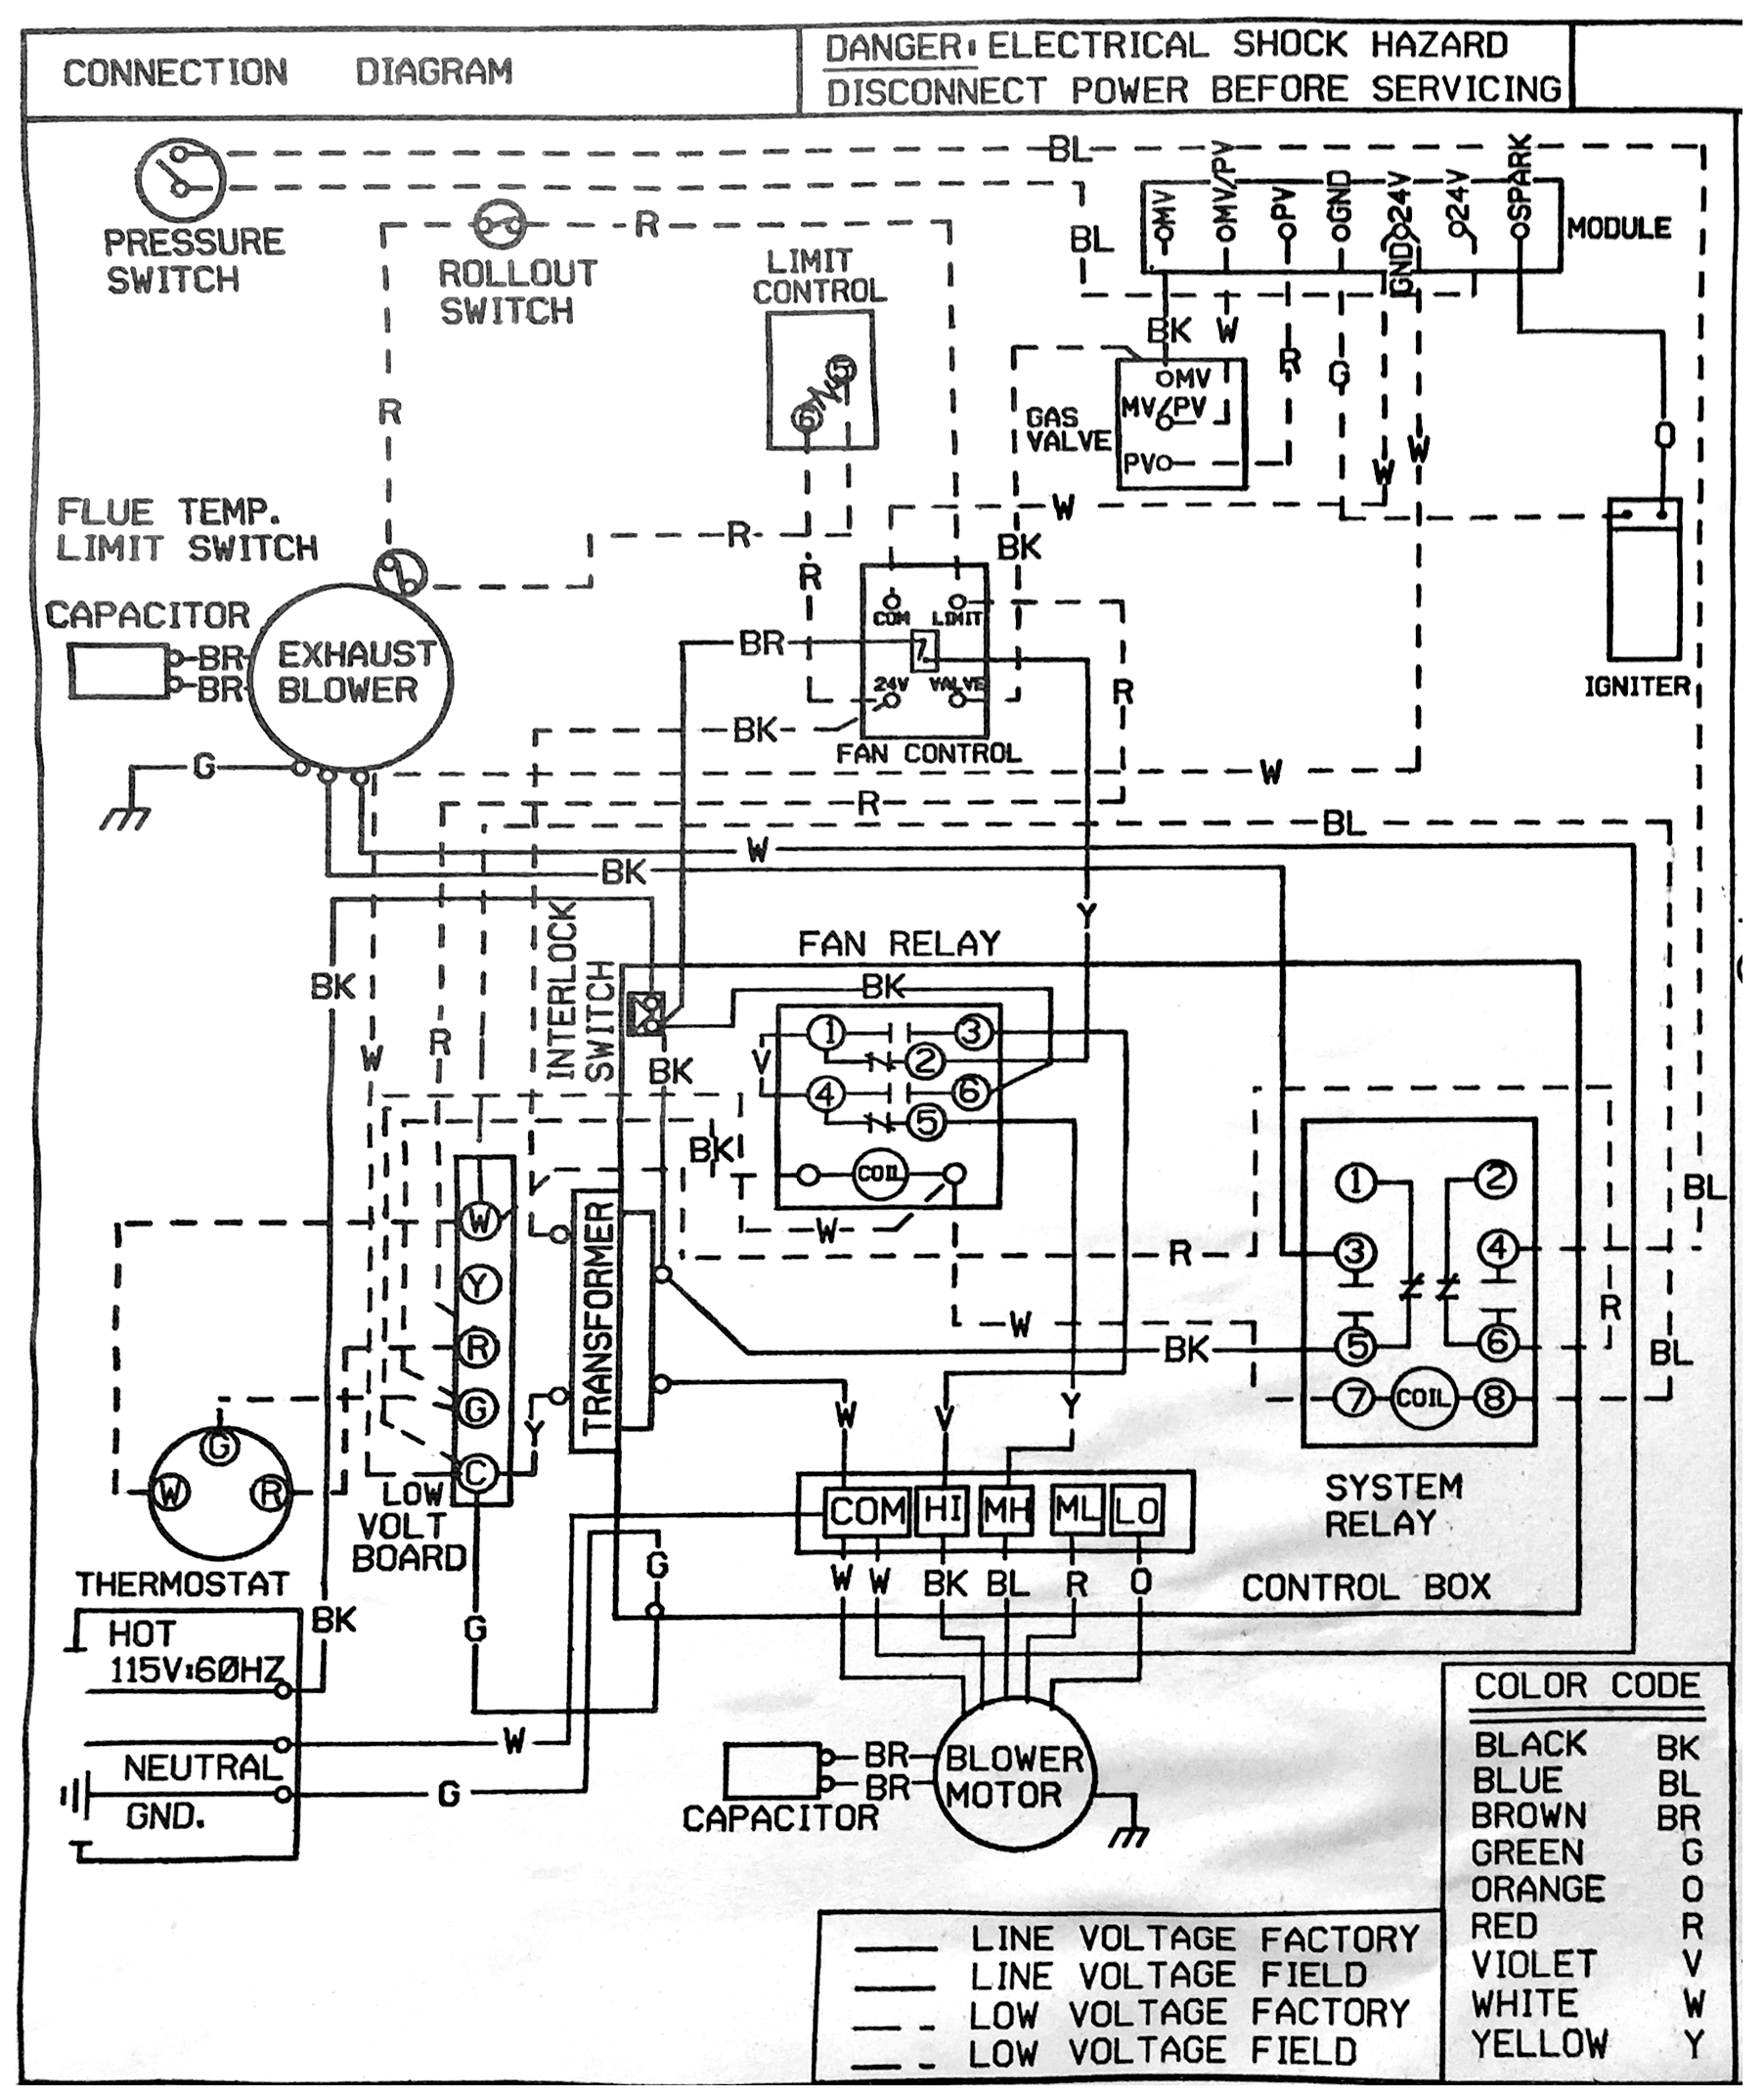 rv furnace diagram tempstar furnace diagram